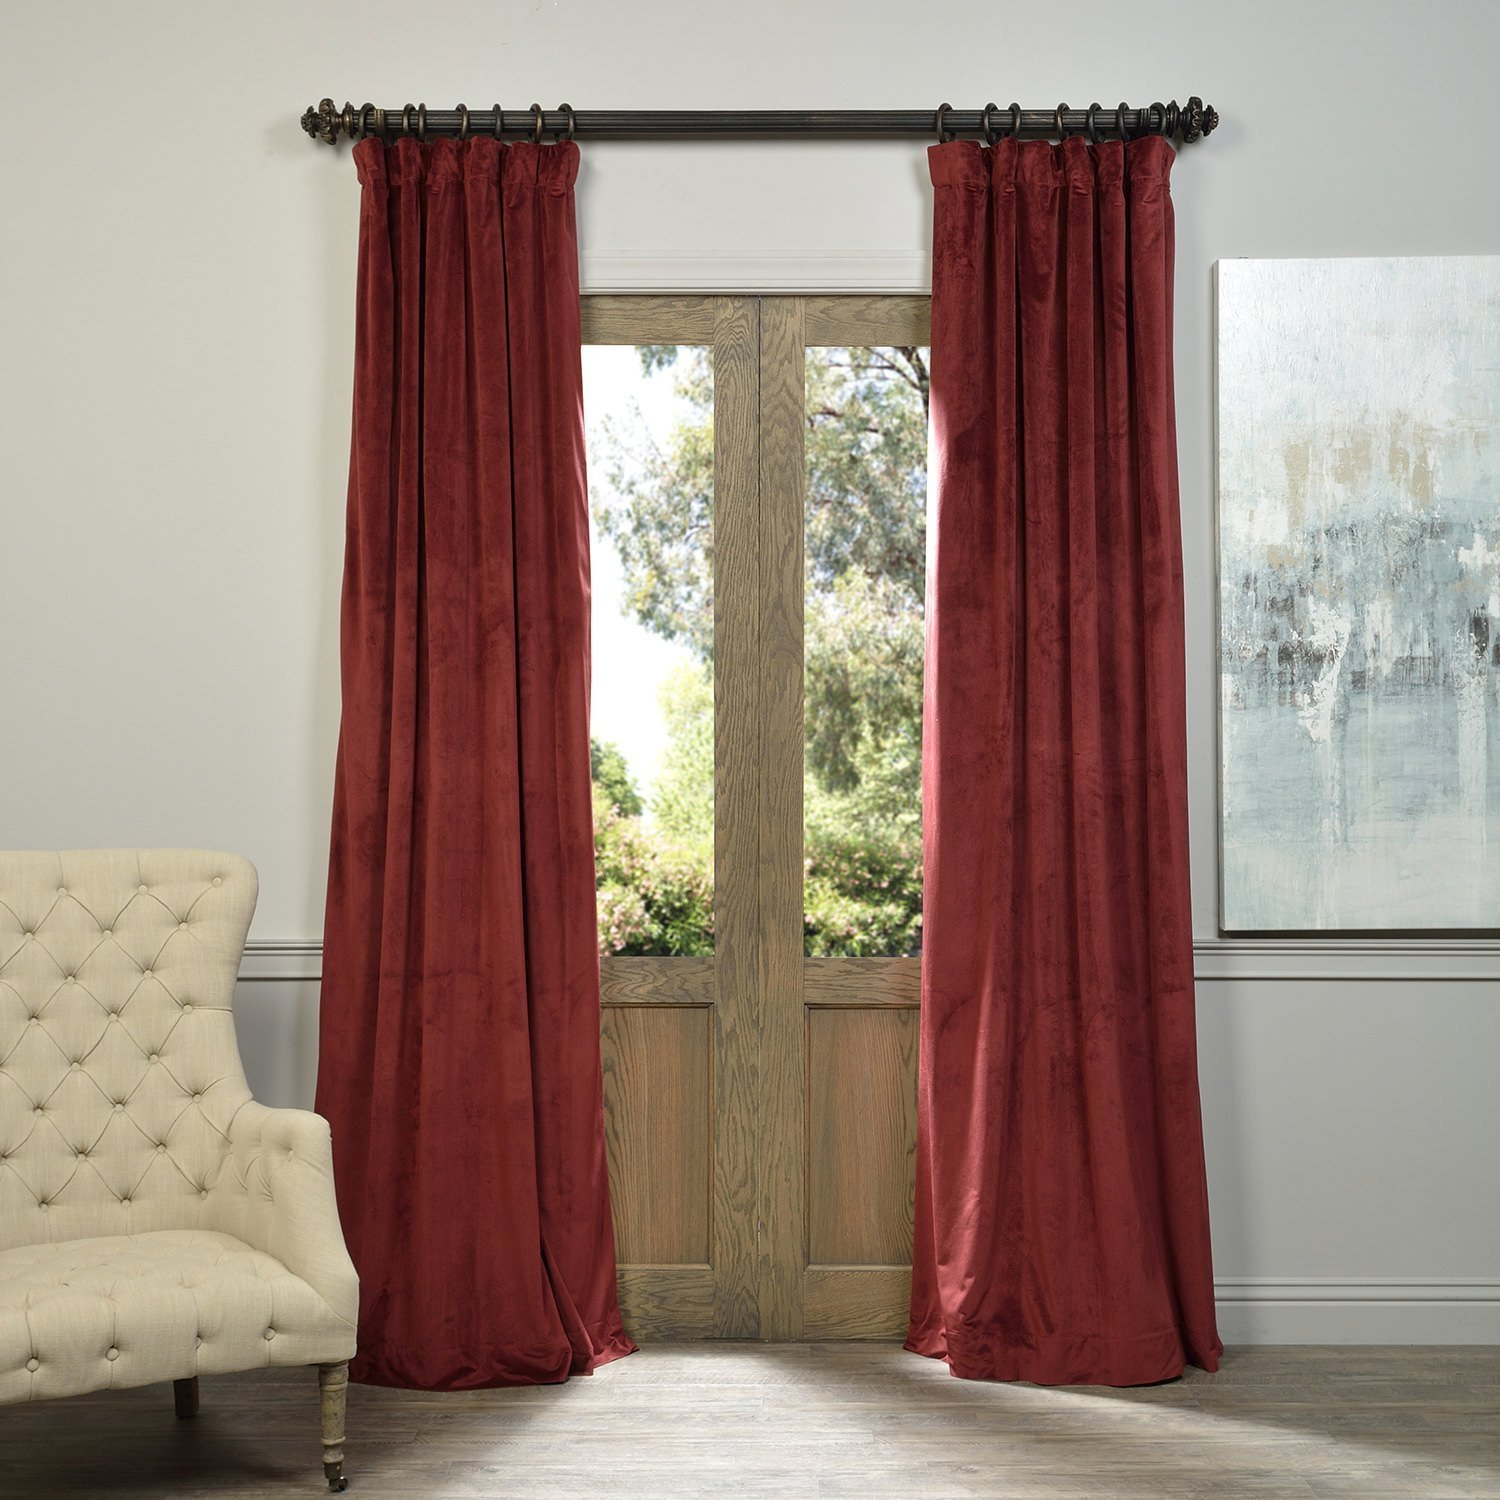 """120"""" W x 84"""" L (set of 2 Panels) Pinch Pleat 90% Beige Lining Blackout Velvet Solid Curtain Thermal Insulated Patio Door Curtain Panel Drape For Traverse Rod and Track, Burgundy Curtain"""